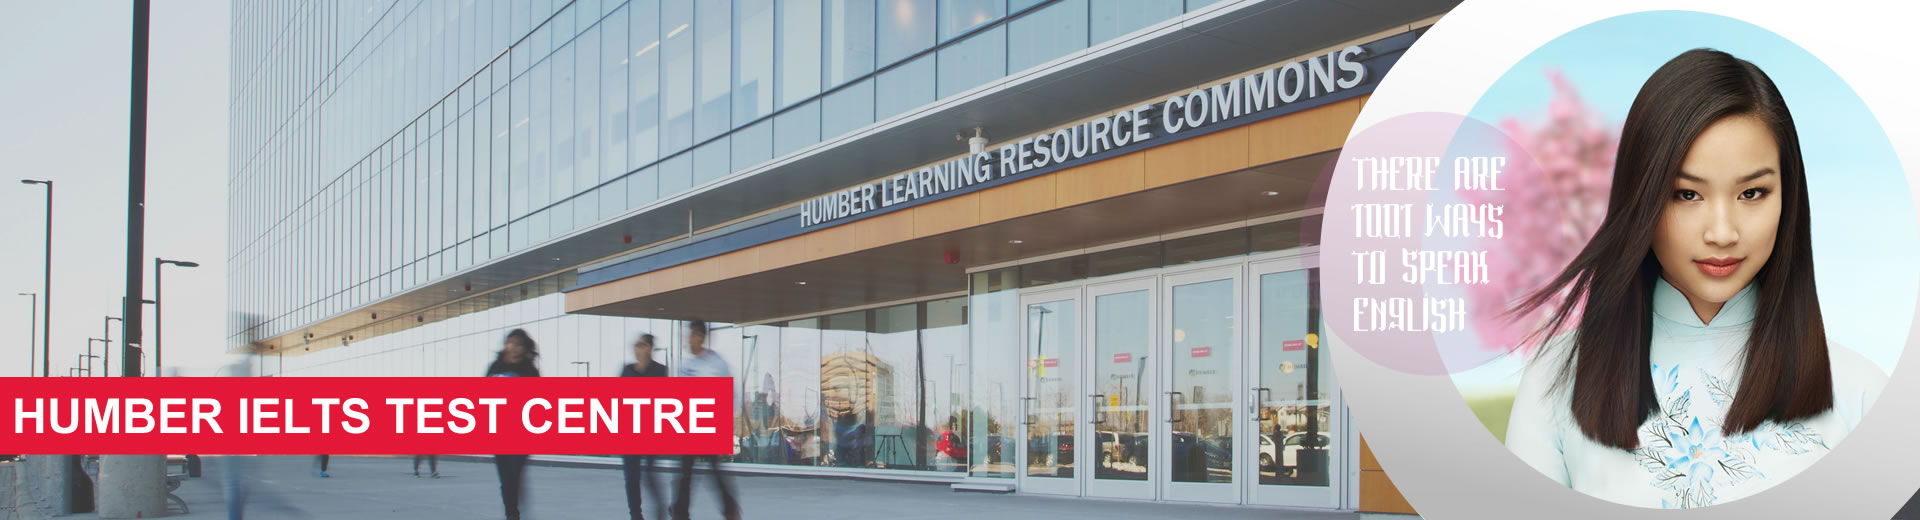 IELTS Testing at Humber College